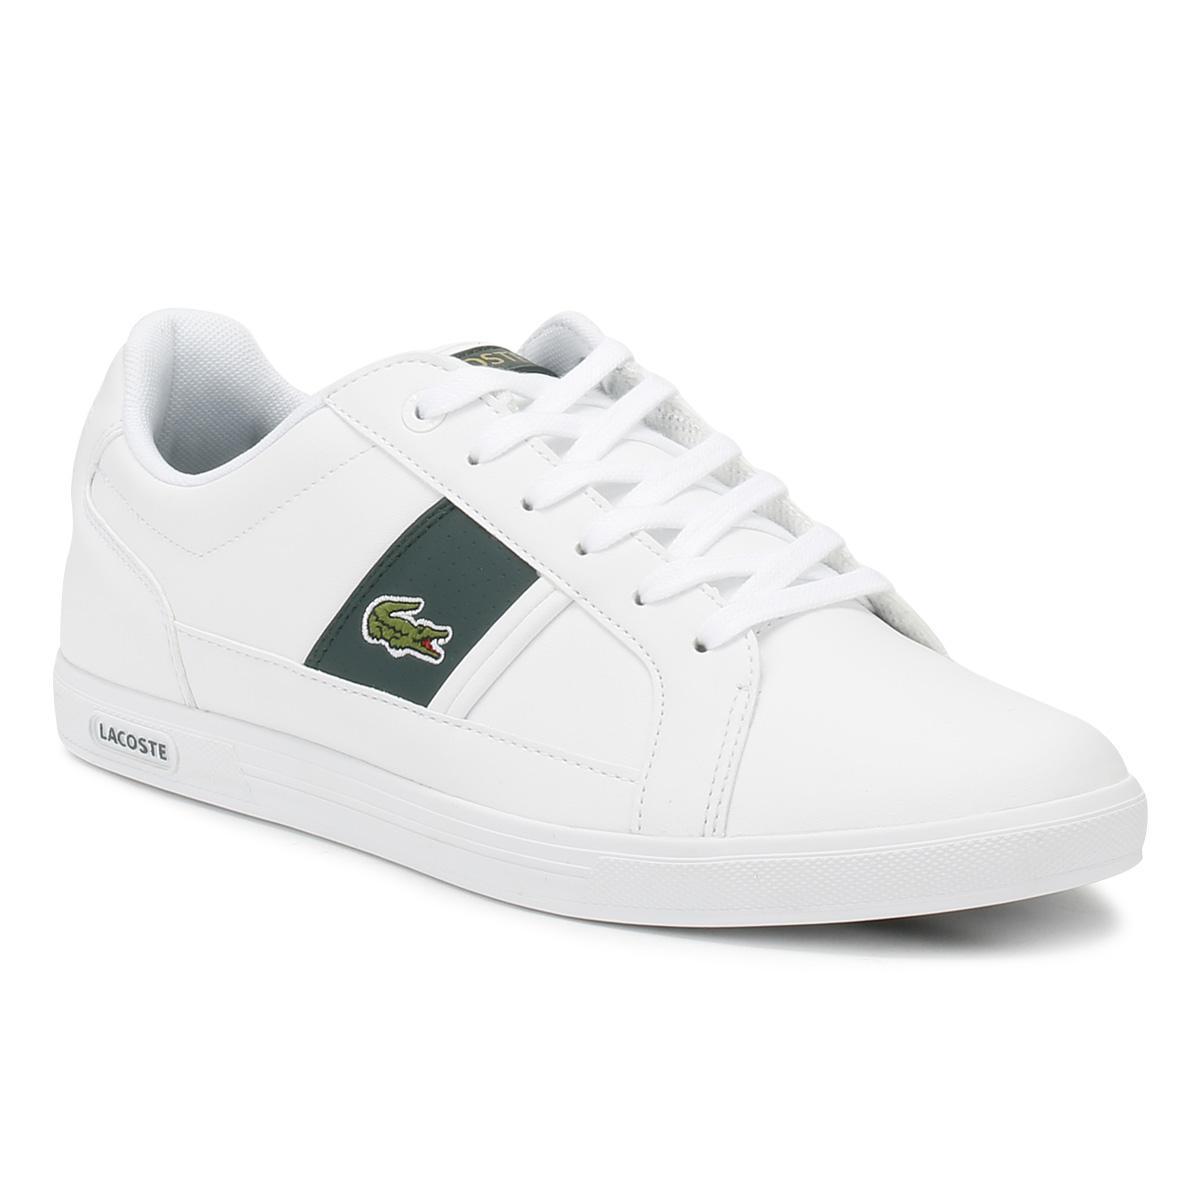 lacoste europa trainers - 53% OFF